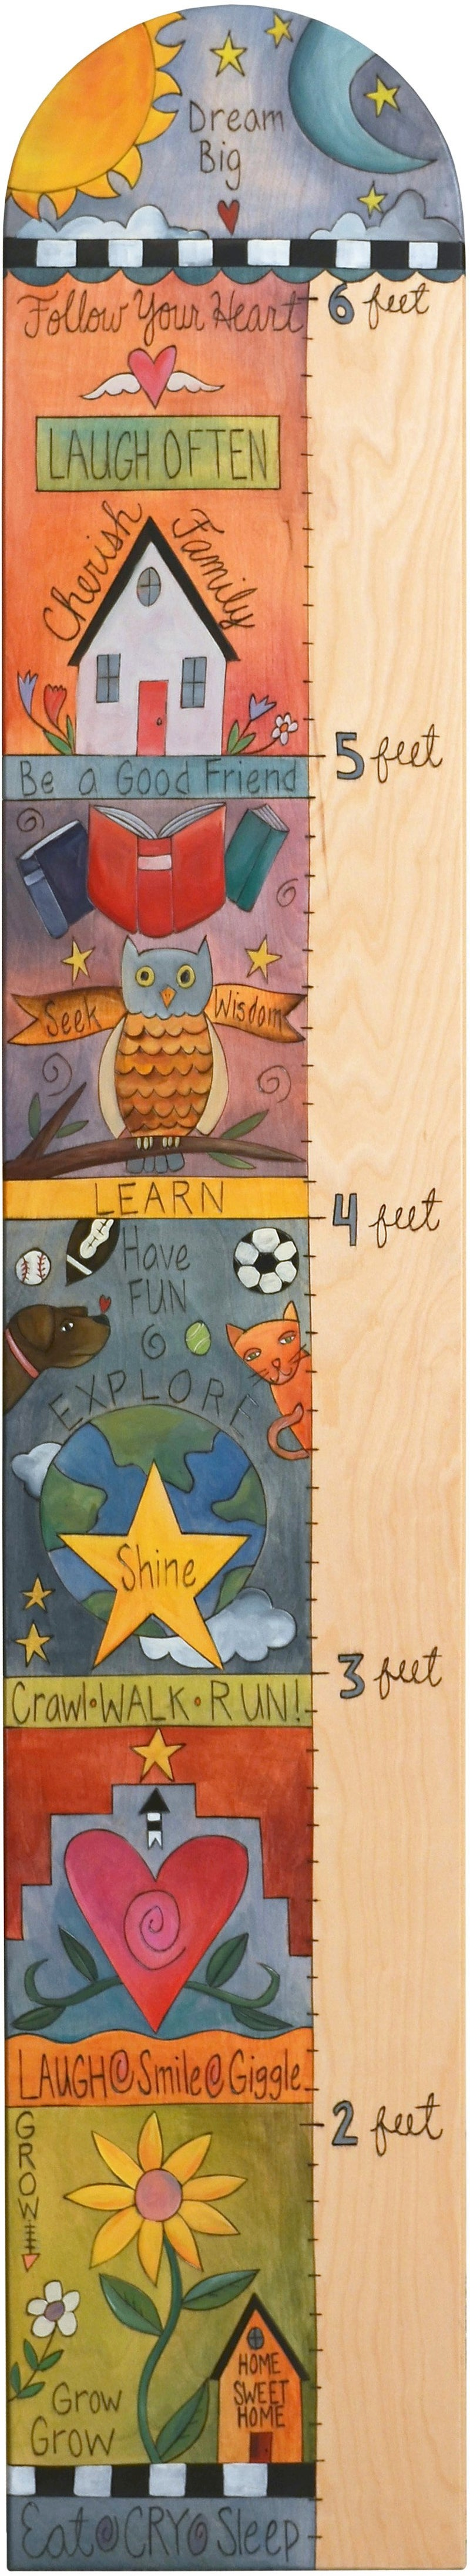 Everlasting Growth Chart –  Colorful growth chart with inspirational scenes and sun and moon at the top